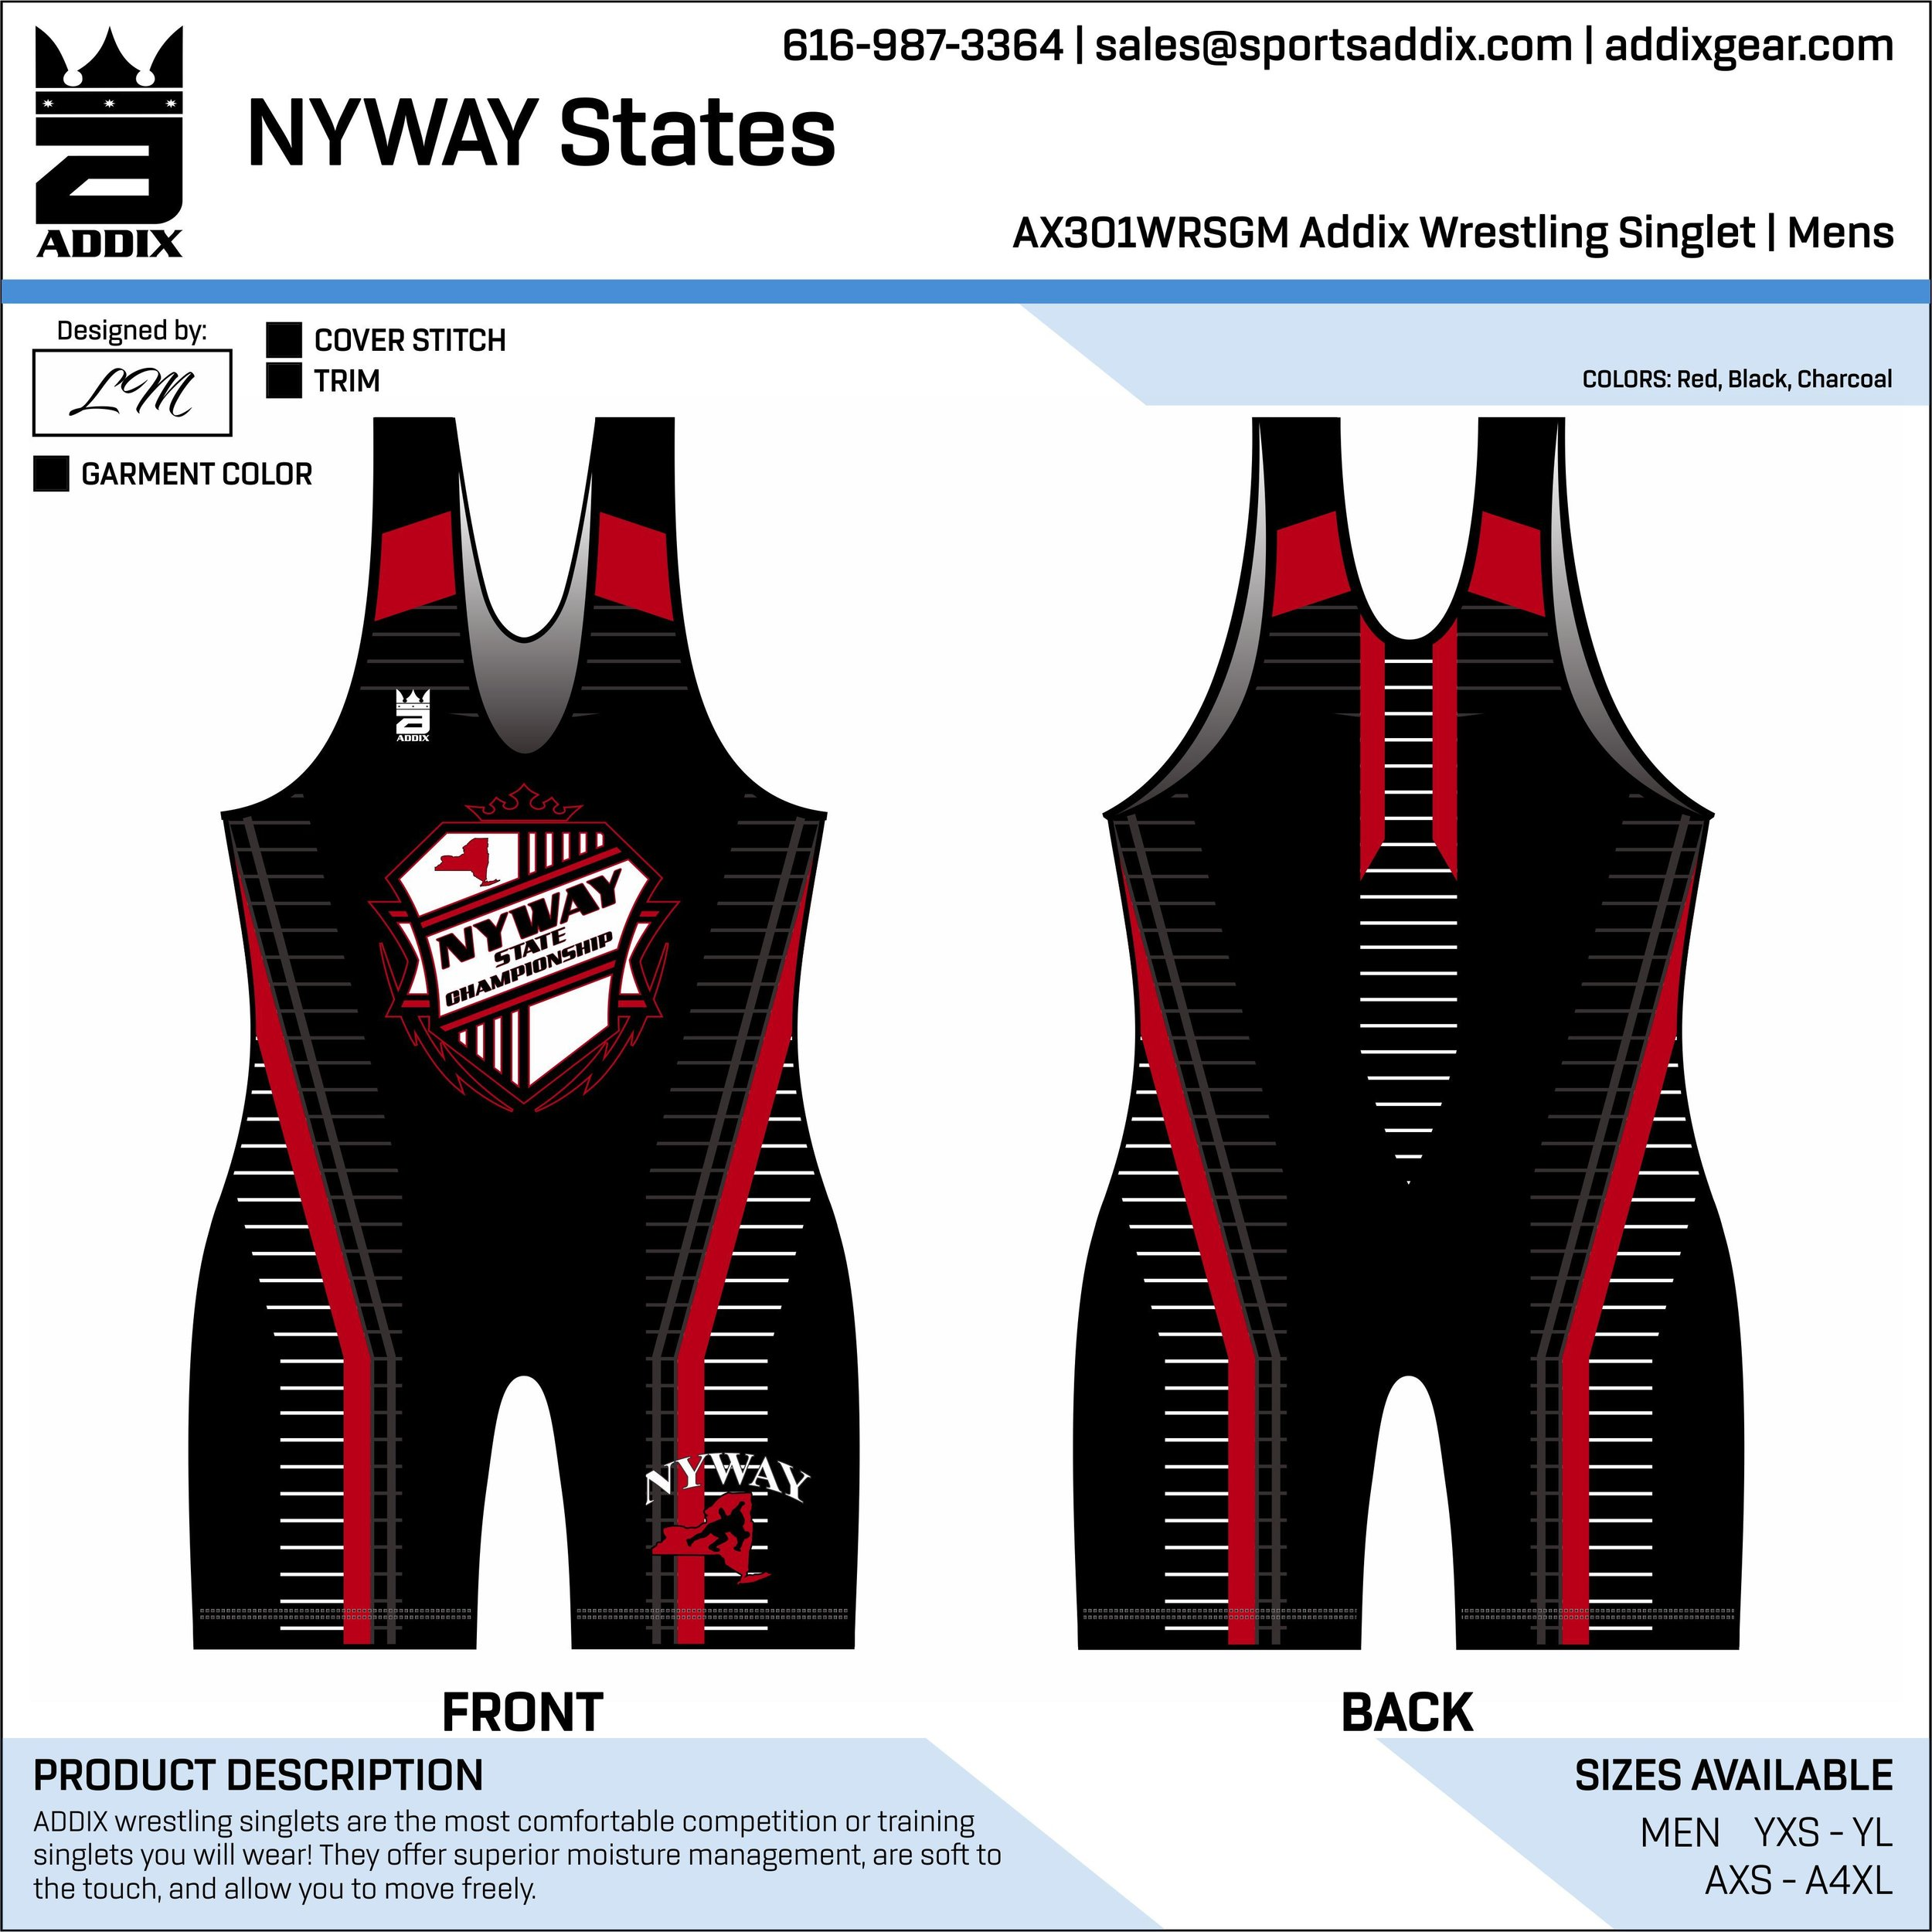 NYWAY States_2019_2-12_LM_singlet_.jpg